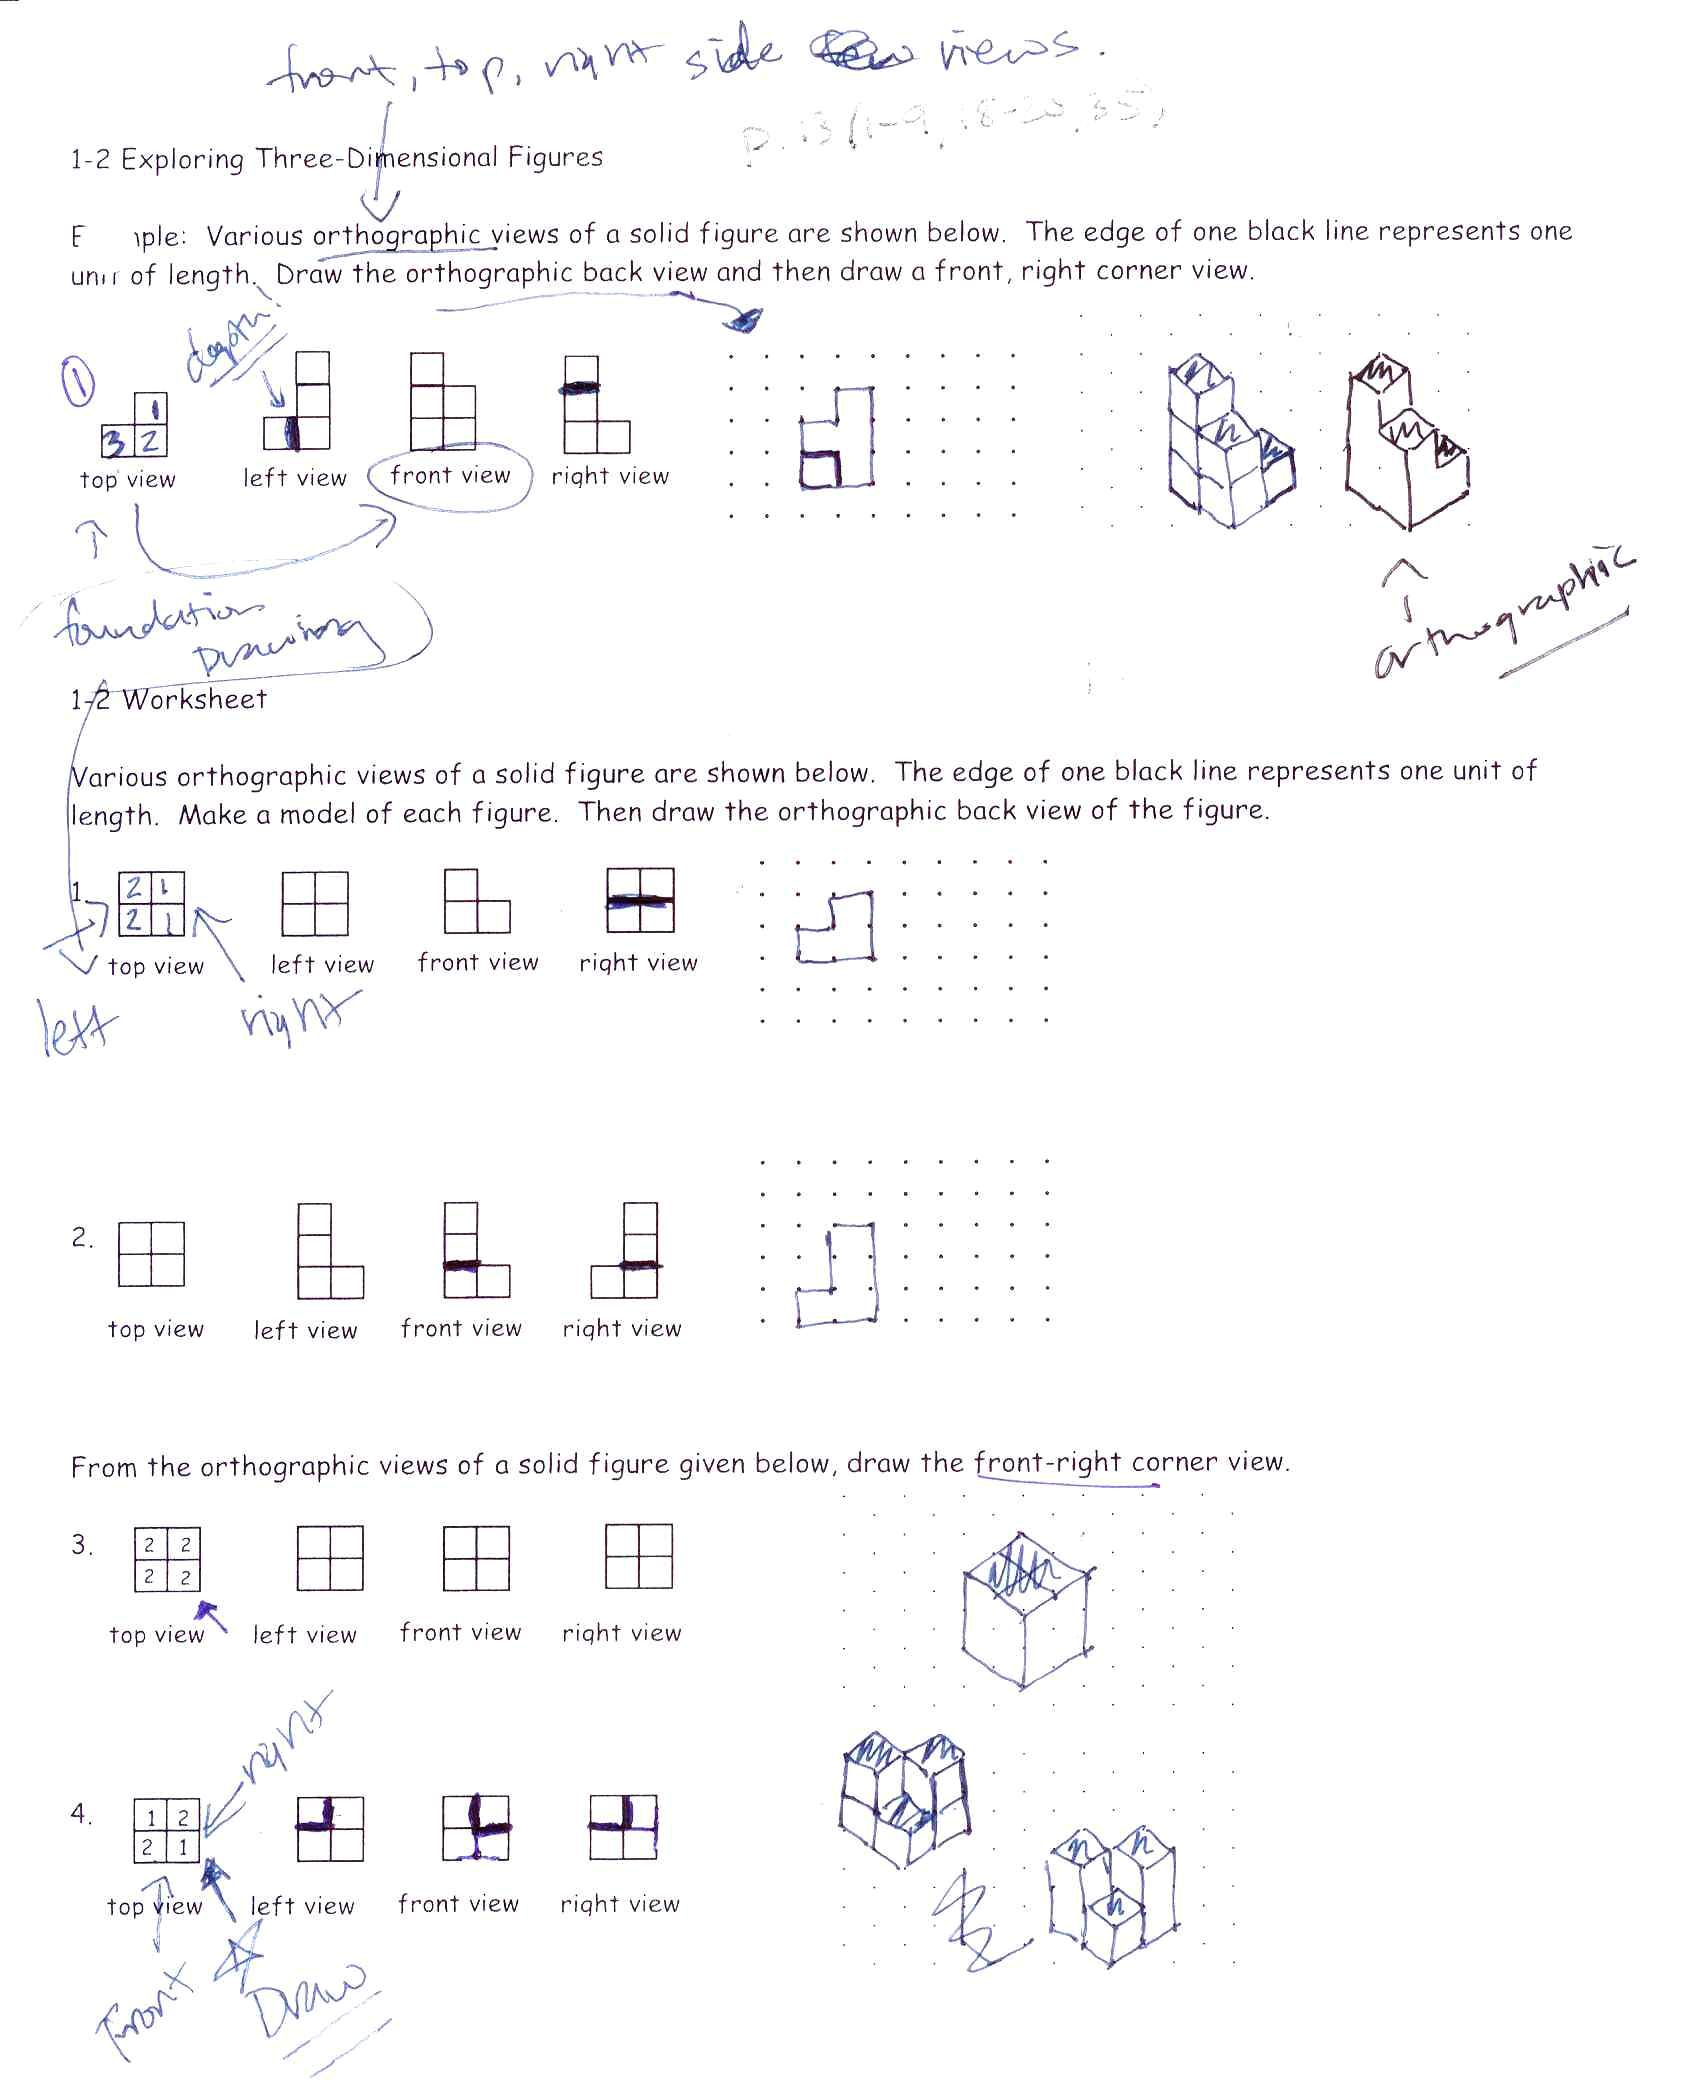 Prentice Hall Algebra 2 Extra Practice Answers Chapter 6